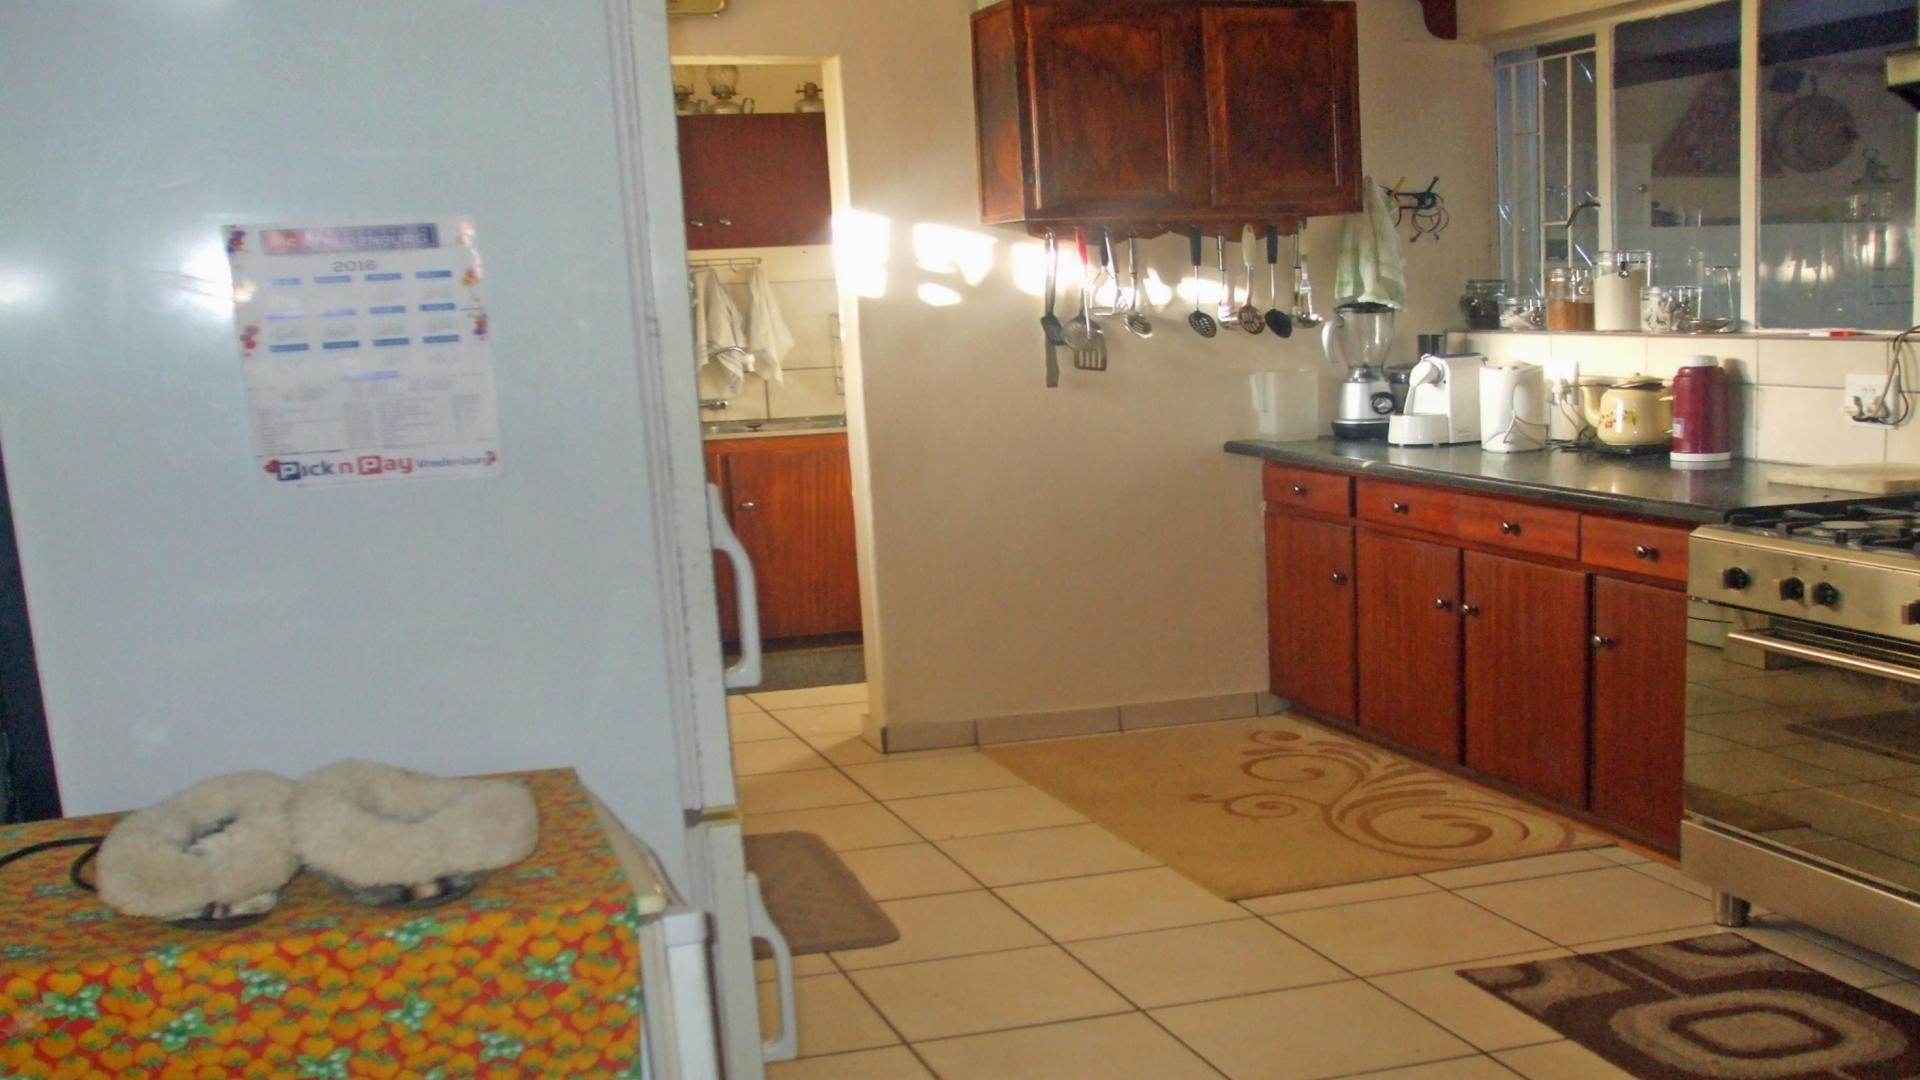 4 Bedroom House For Sale For Sale In Vredenburg  Private. Blue Kitchen Harissa Paste. American Diner Kitchen Units. Kitchen Paint Sale. Kitchen Tools Drawing With Names. Kitchen Hood Fans Ratings. Kitchen Storage Ottawa. Kitchen Cabinets On A Budget. Kitchen Rug Crate And Barrel